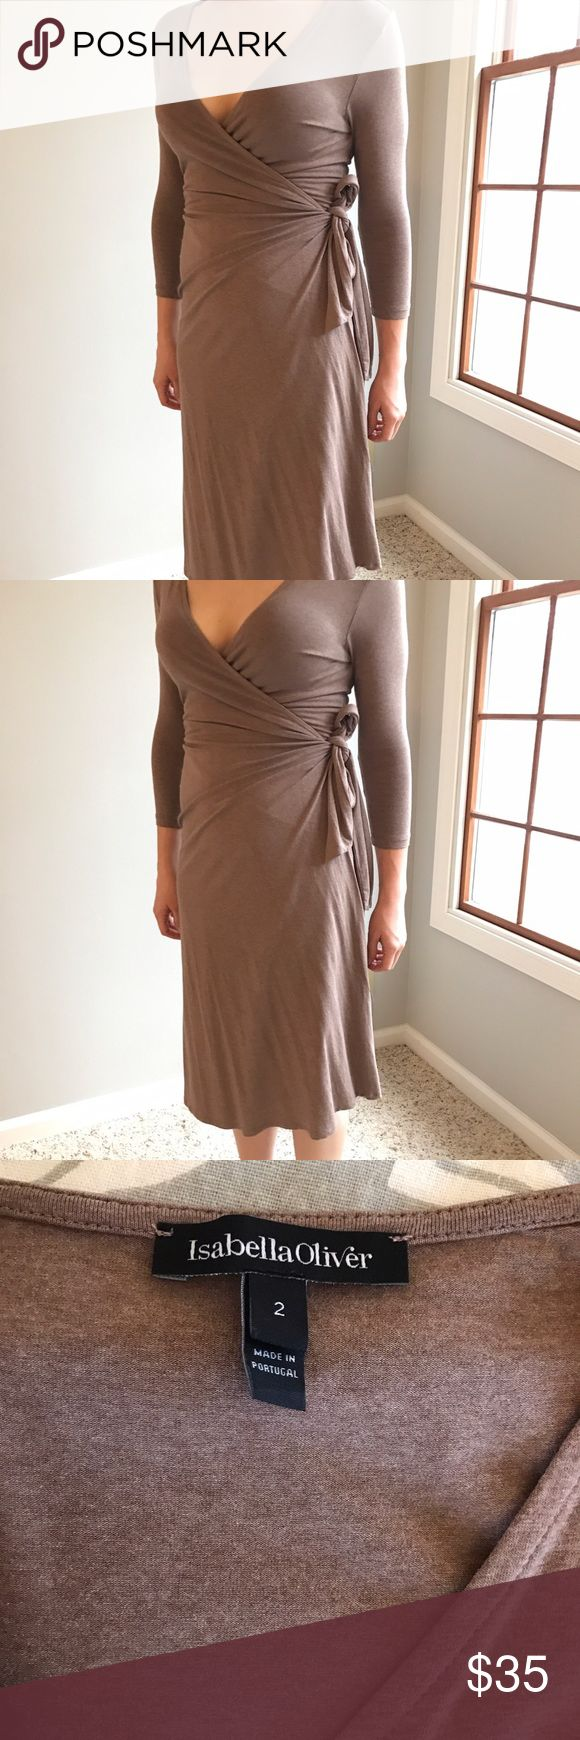 Isabella Oliver Wrap Dress in Brown. Size 2. Isabella Oliver Wrap Dress in Brown. Size 2. Maternity dress and great post-partum as well! Like-new condition! Isabella Oliver Dresses Midi